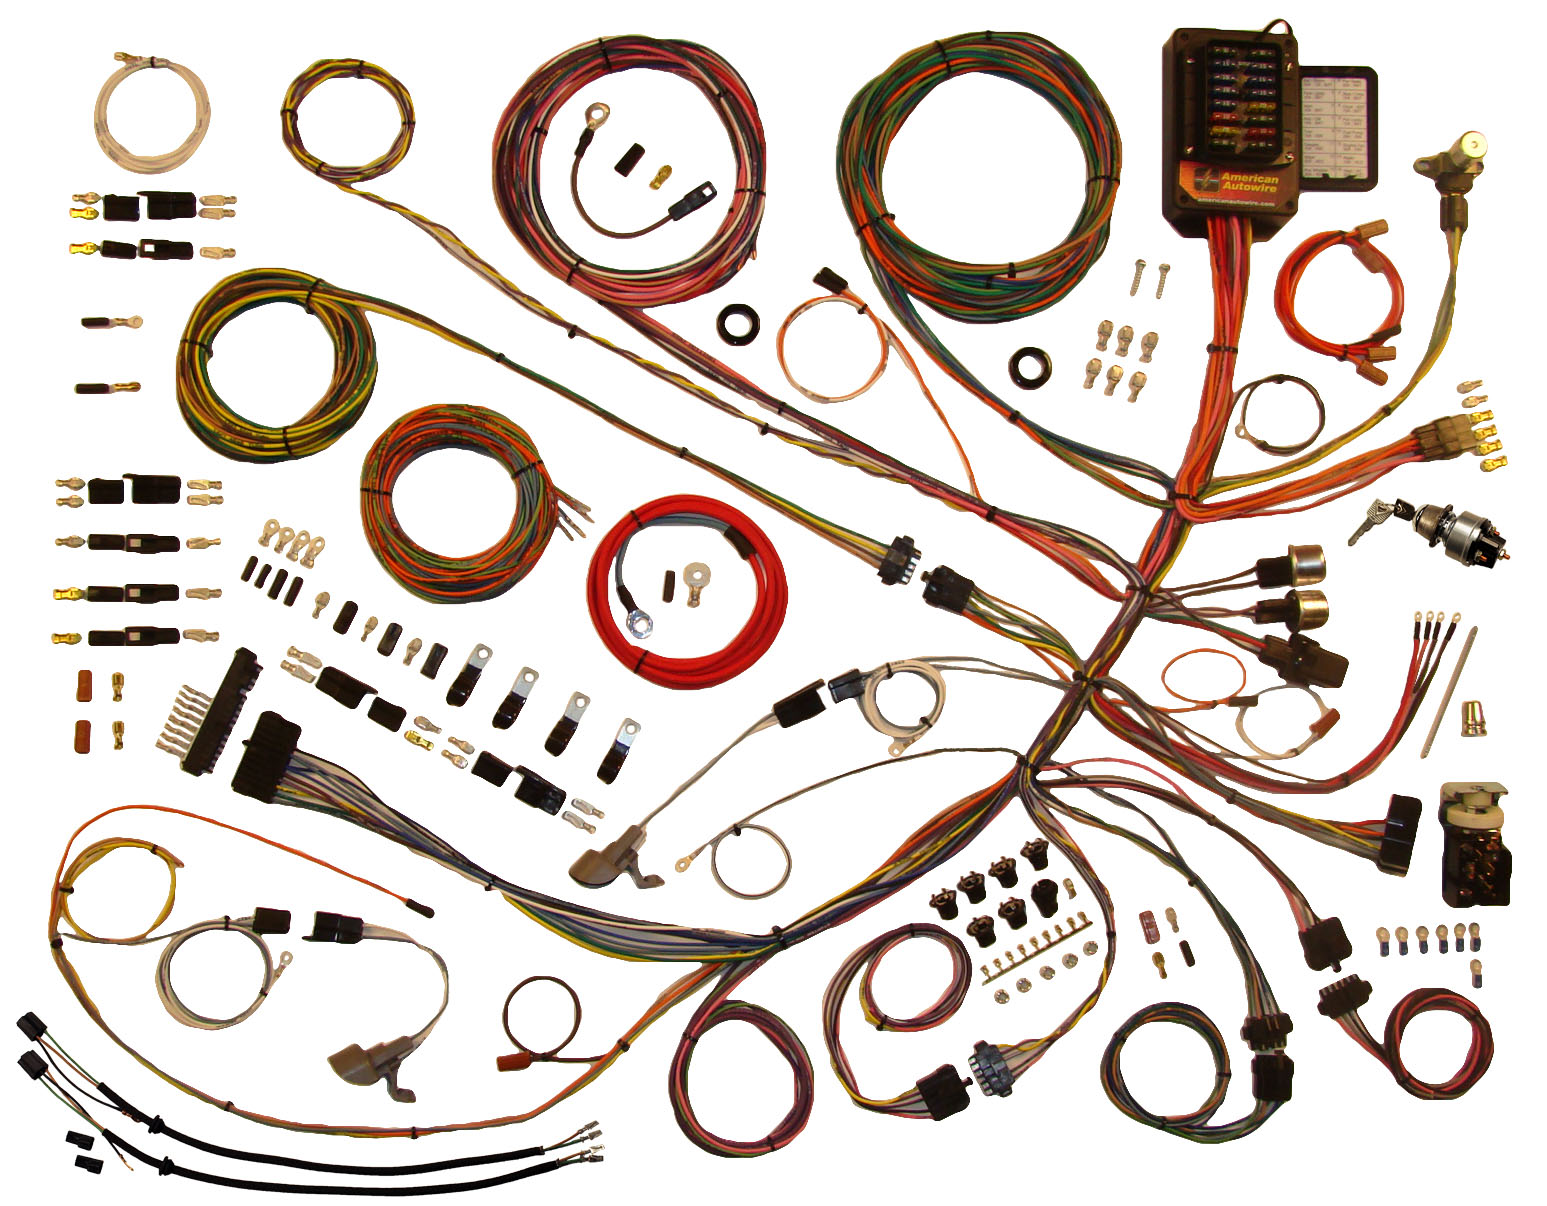 1953 1956 ford truck classic update wiring kit charlotte rod and rh charlotterod com Ford Truck Wiring Harness Engine Wiring Harness 1970 Barracuda